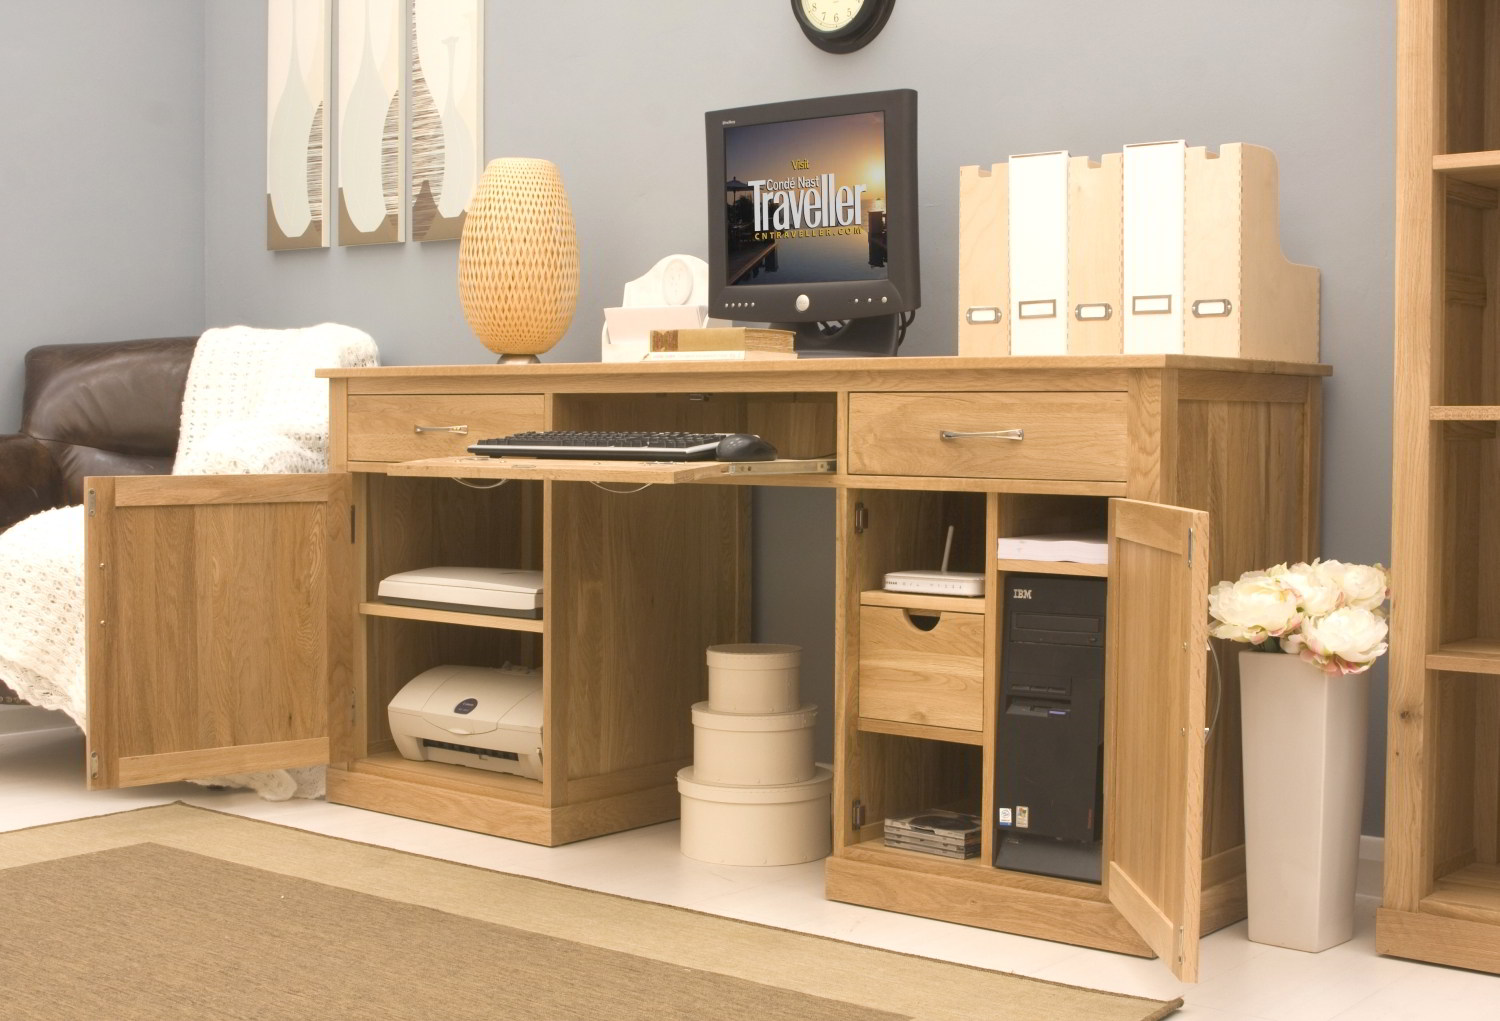 Conran solid oak modern furniture large hidden home office PC computer desk : eBay